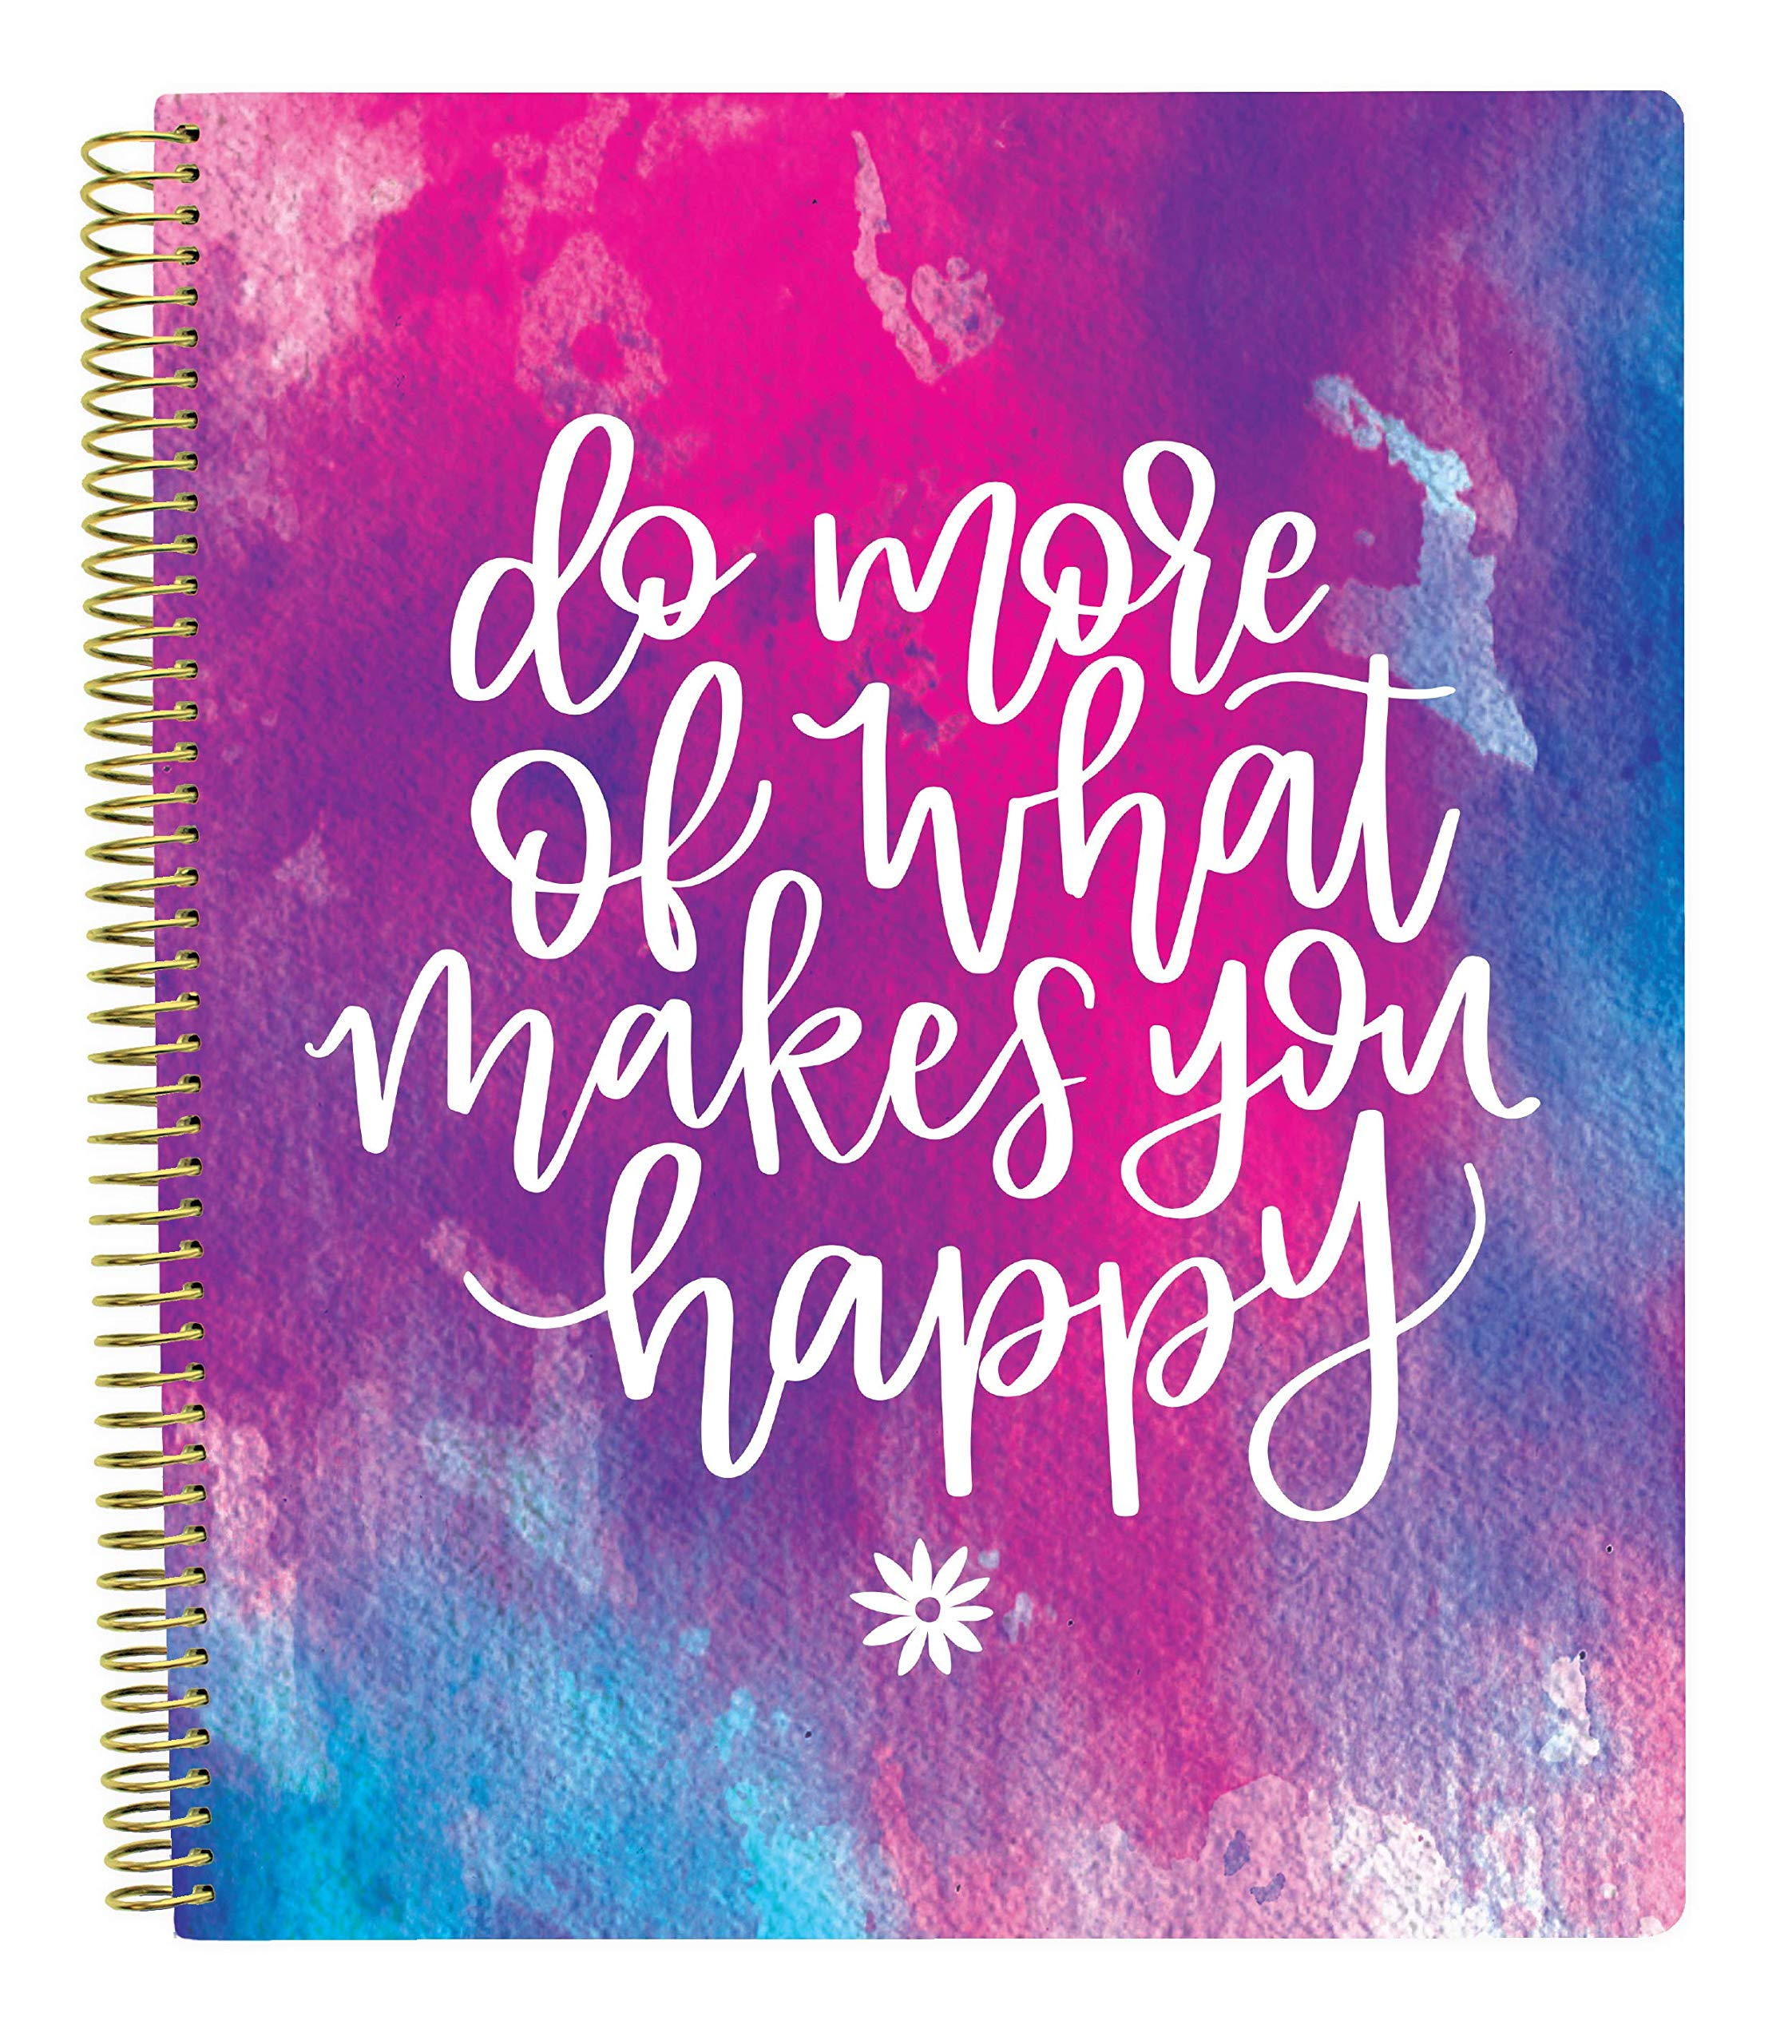 Bloom Daily Planners All in One Ultimate Monthly & Weekly Planner, Notebook, Sketch Book, Grid Pages, Coloring Book and More! 9'' x 11'' Do More of What Makes You Happy